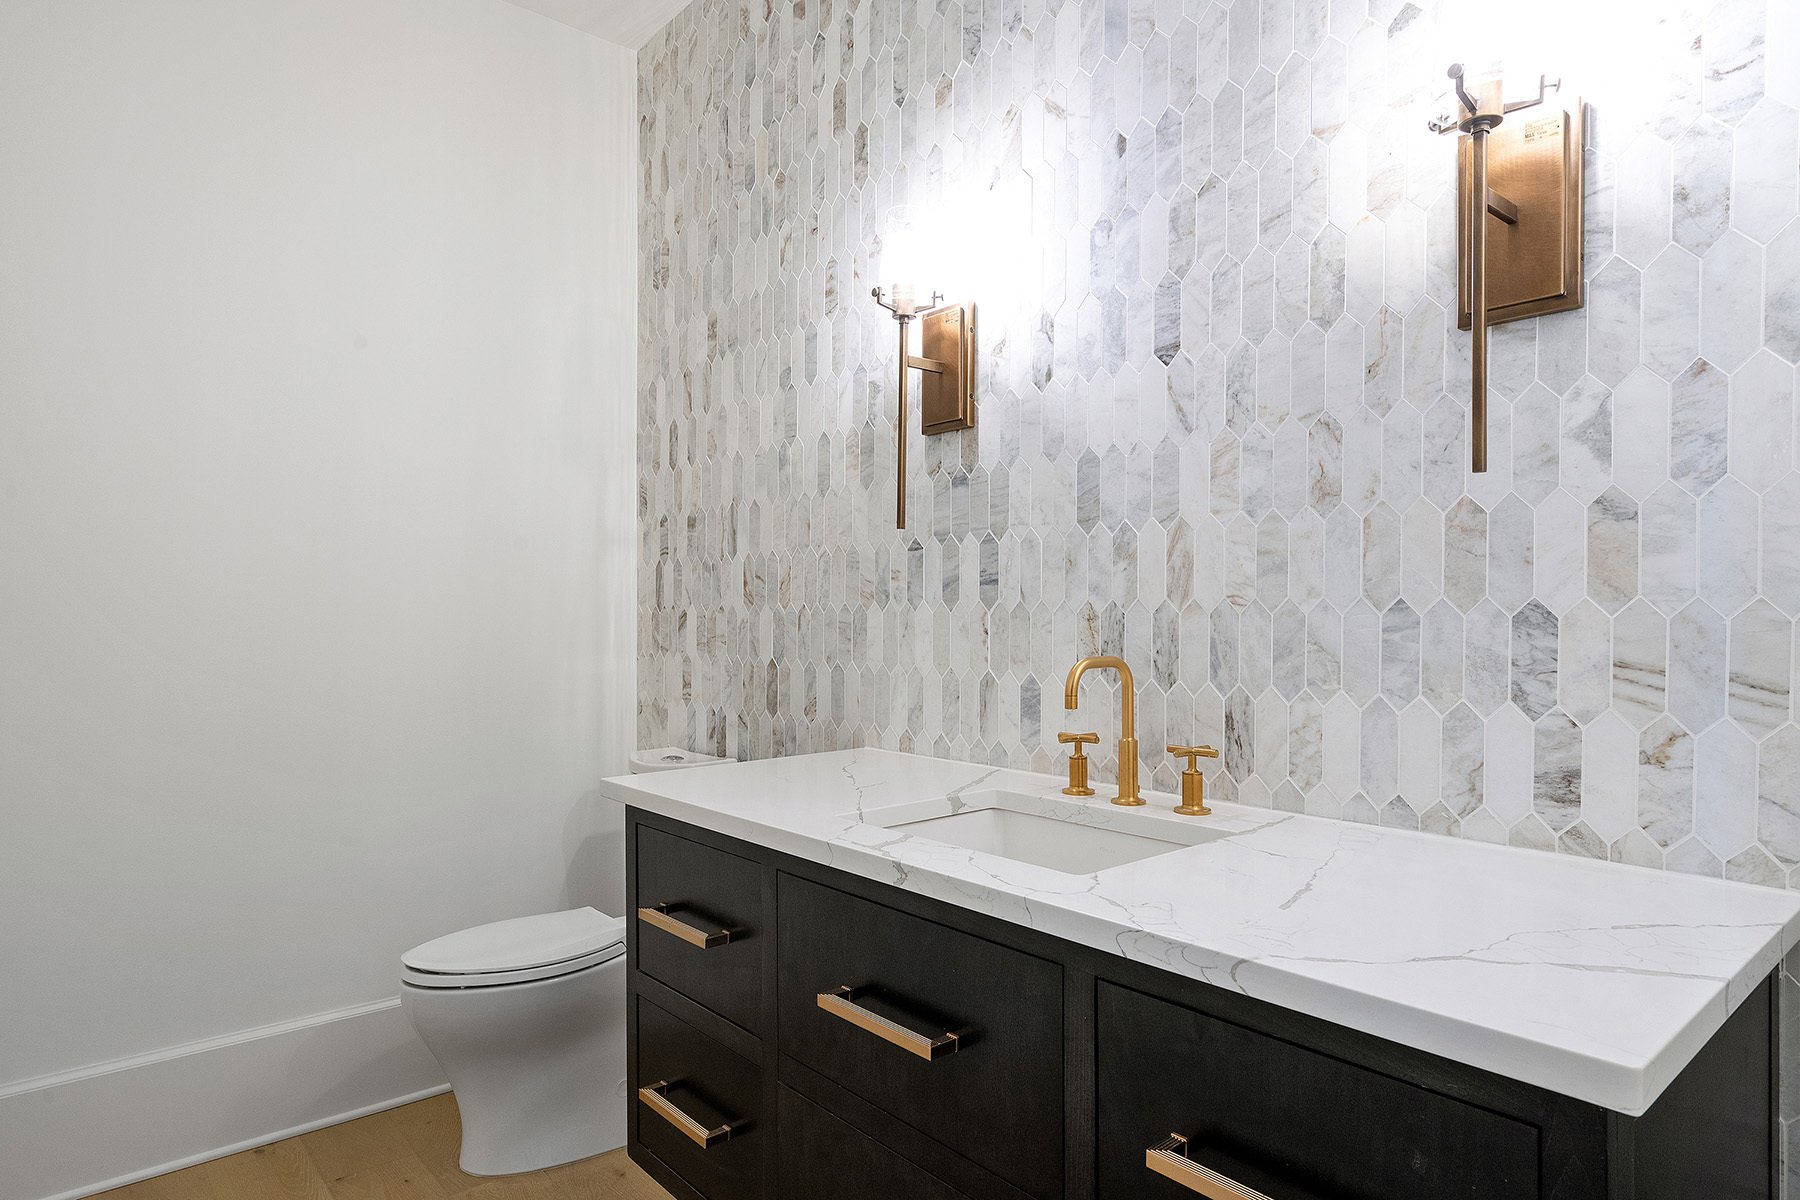 The Best Grout Color For Marble Carrara Tile More